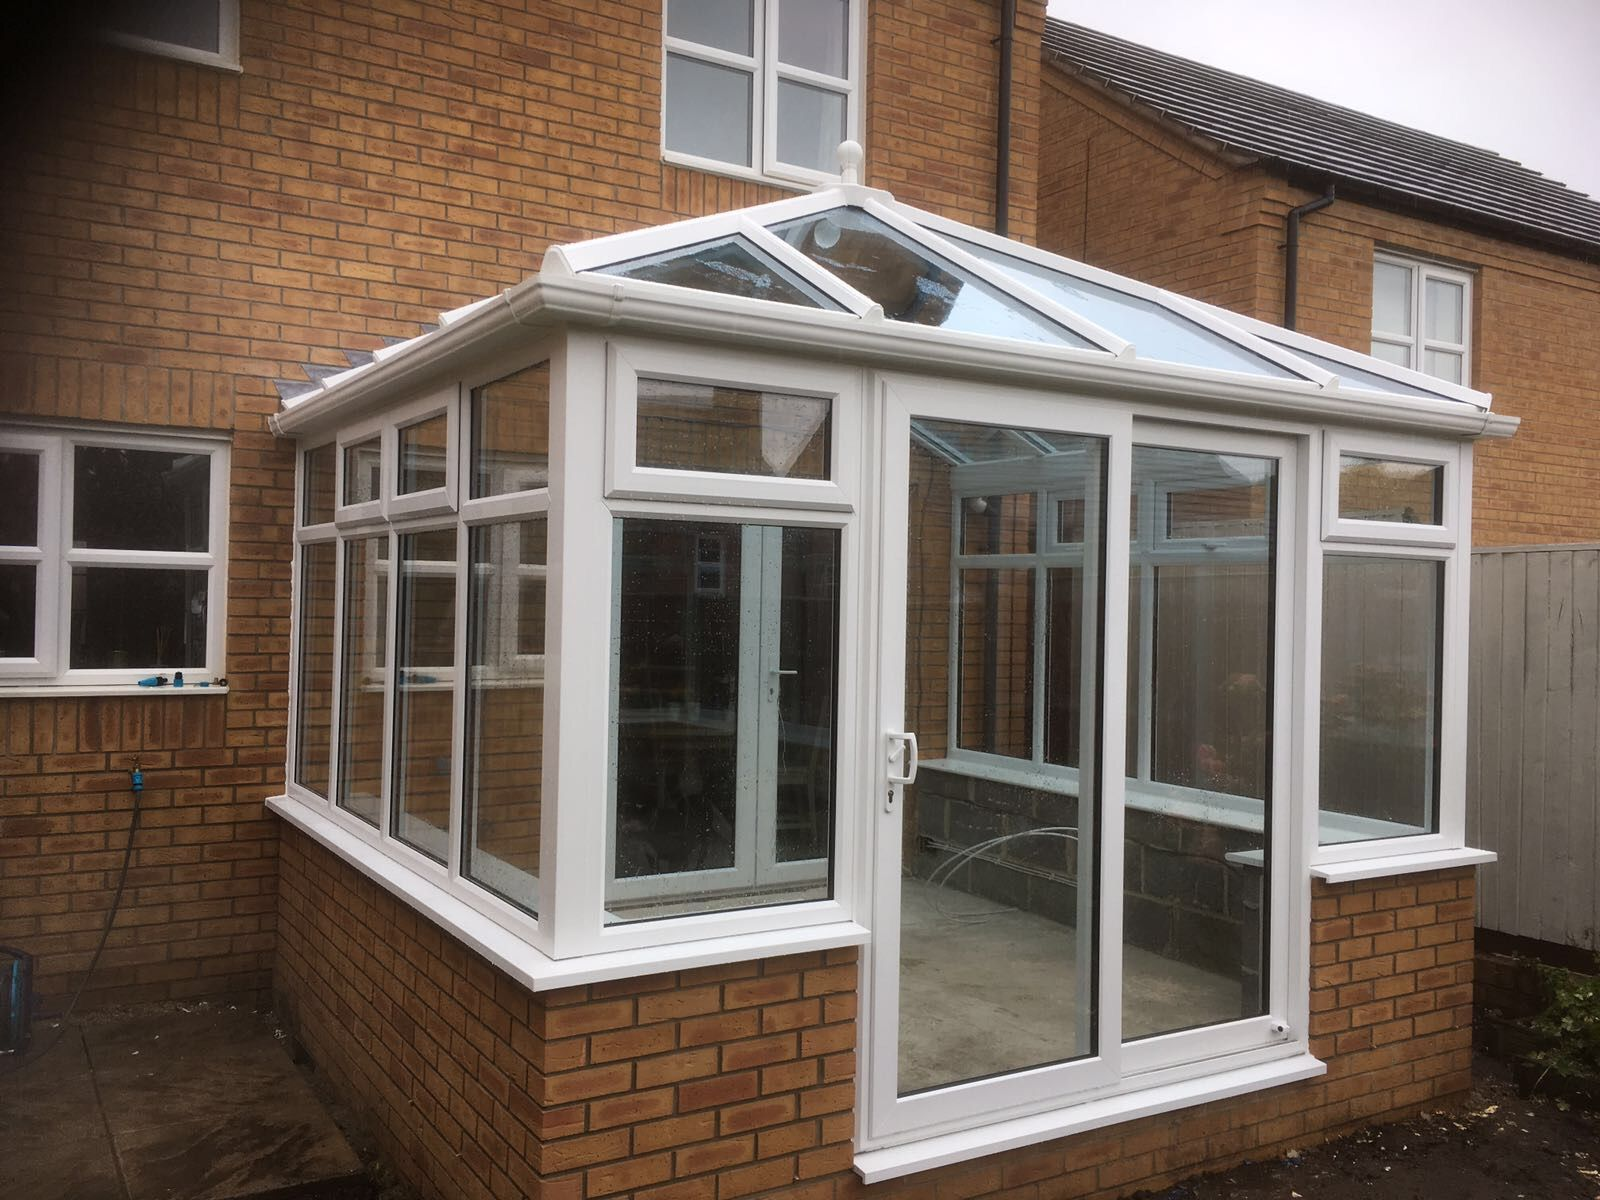 White Synseal Edwardian Style Conservatory With Sliding Patio Doors And Self Cleaning Blue Glass Installed In A Patio Canopy Pergola Plans Sliding Patio Doors